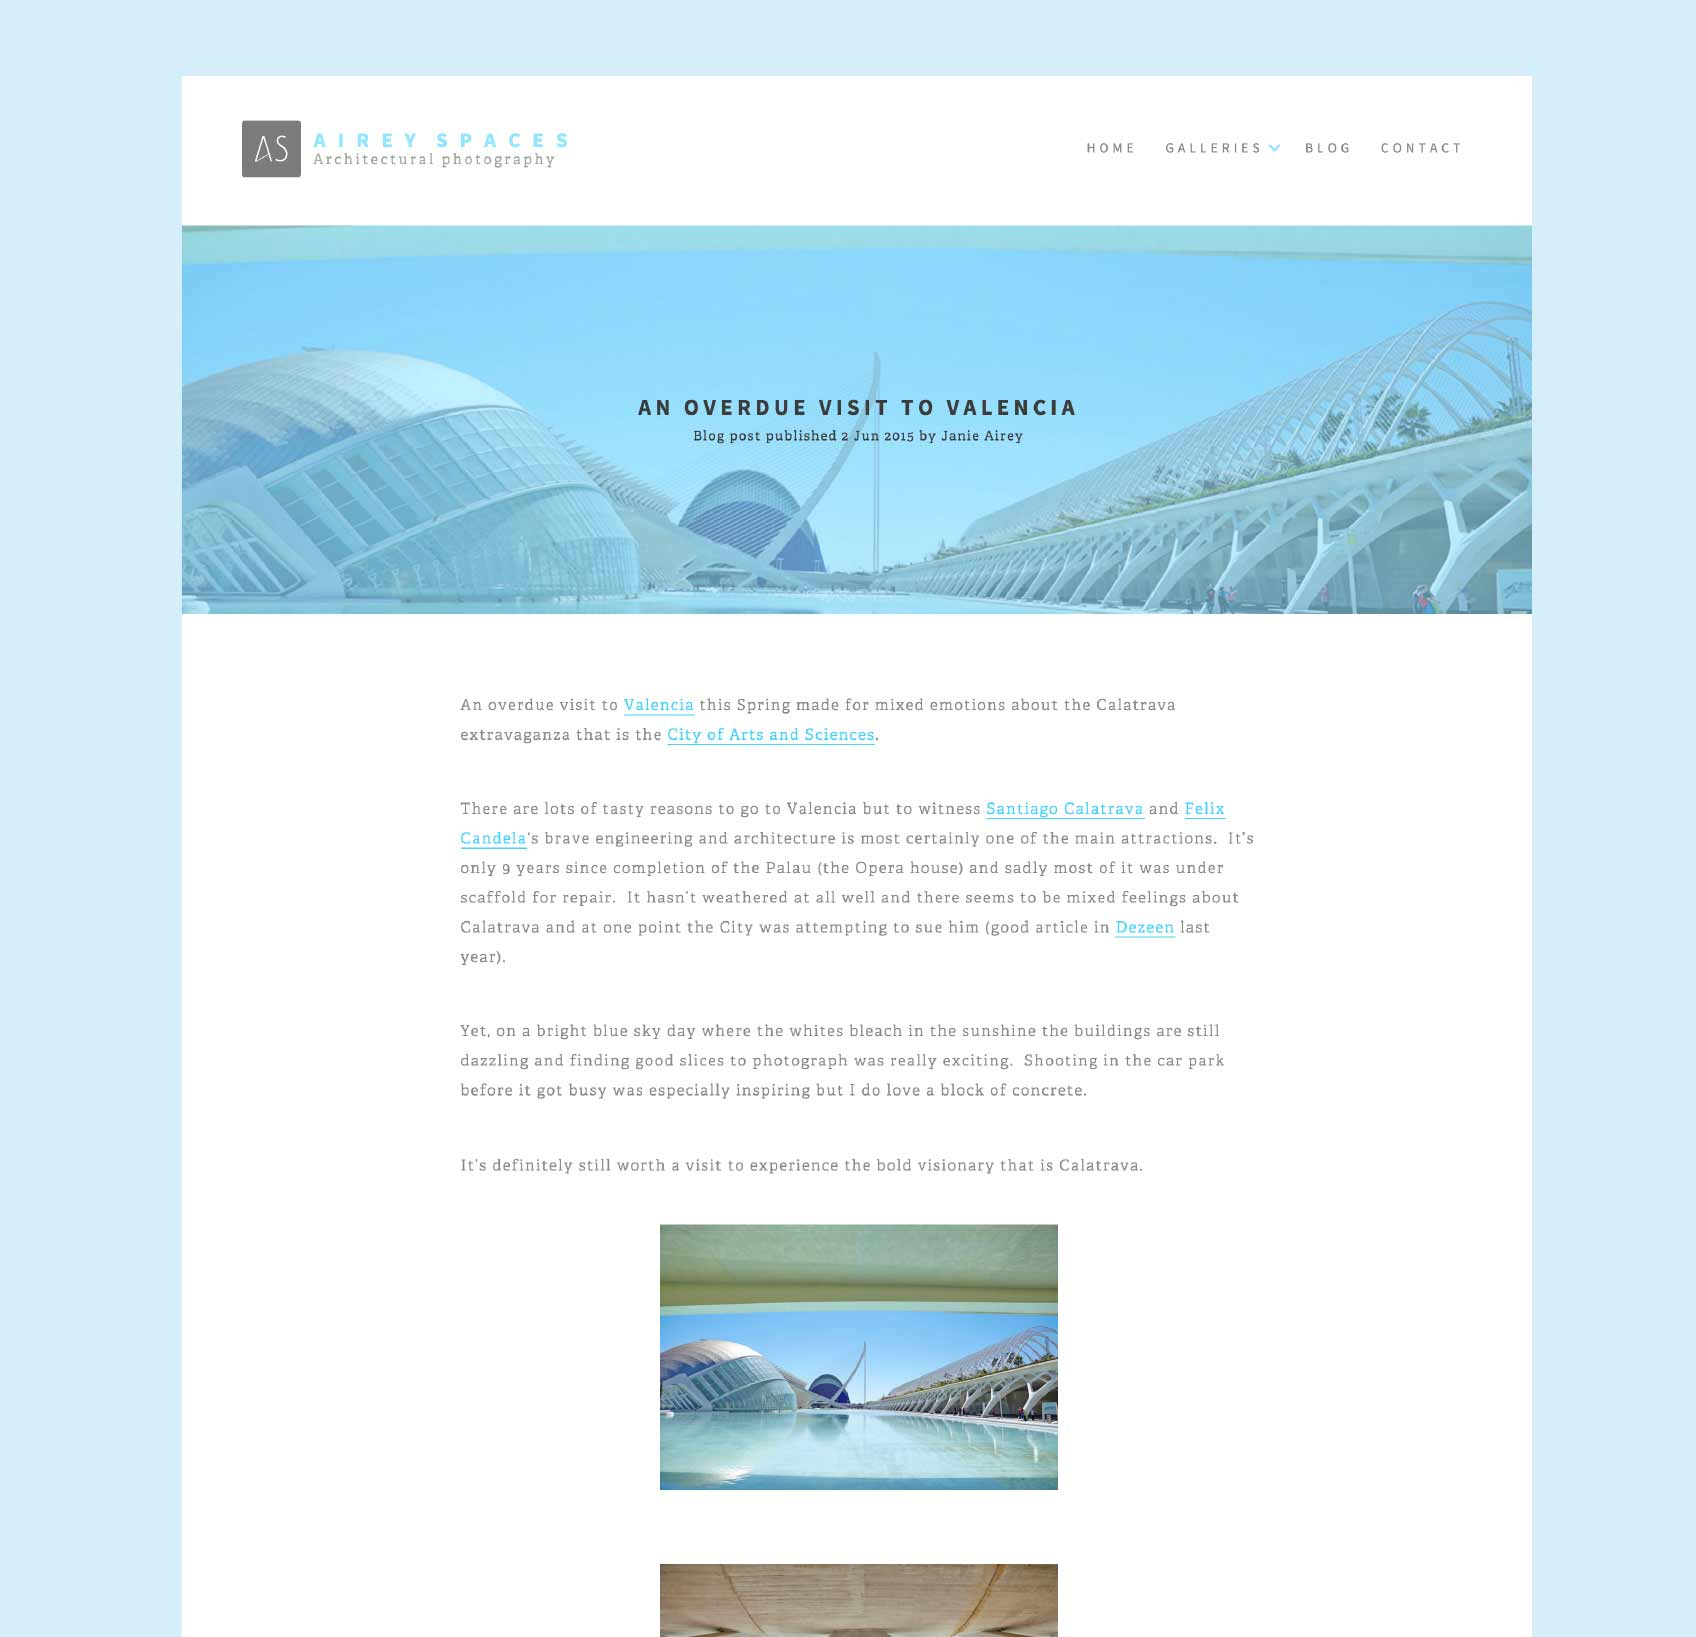 Airey Spaces blog page design by freelancer Geoff Muskett